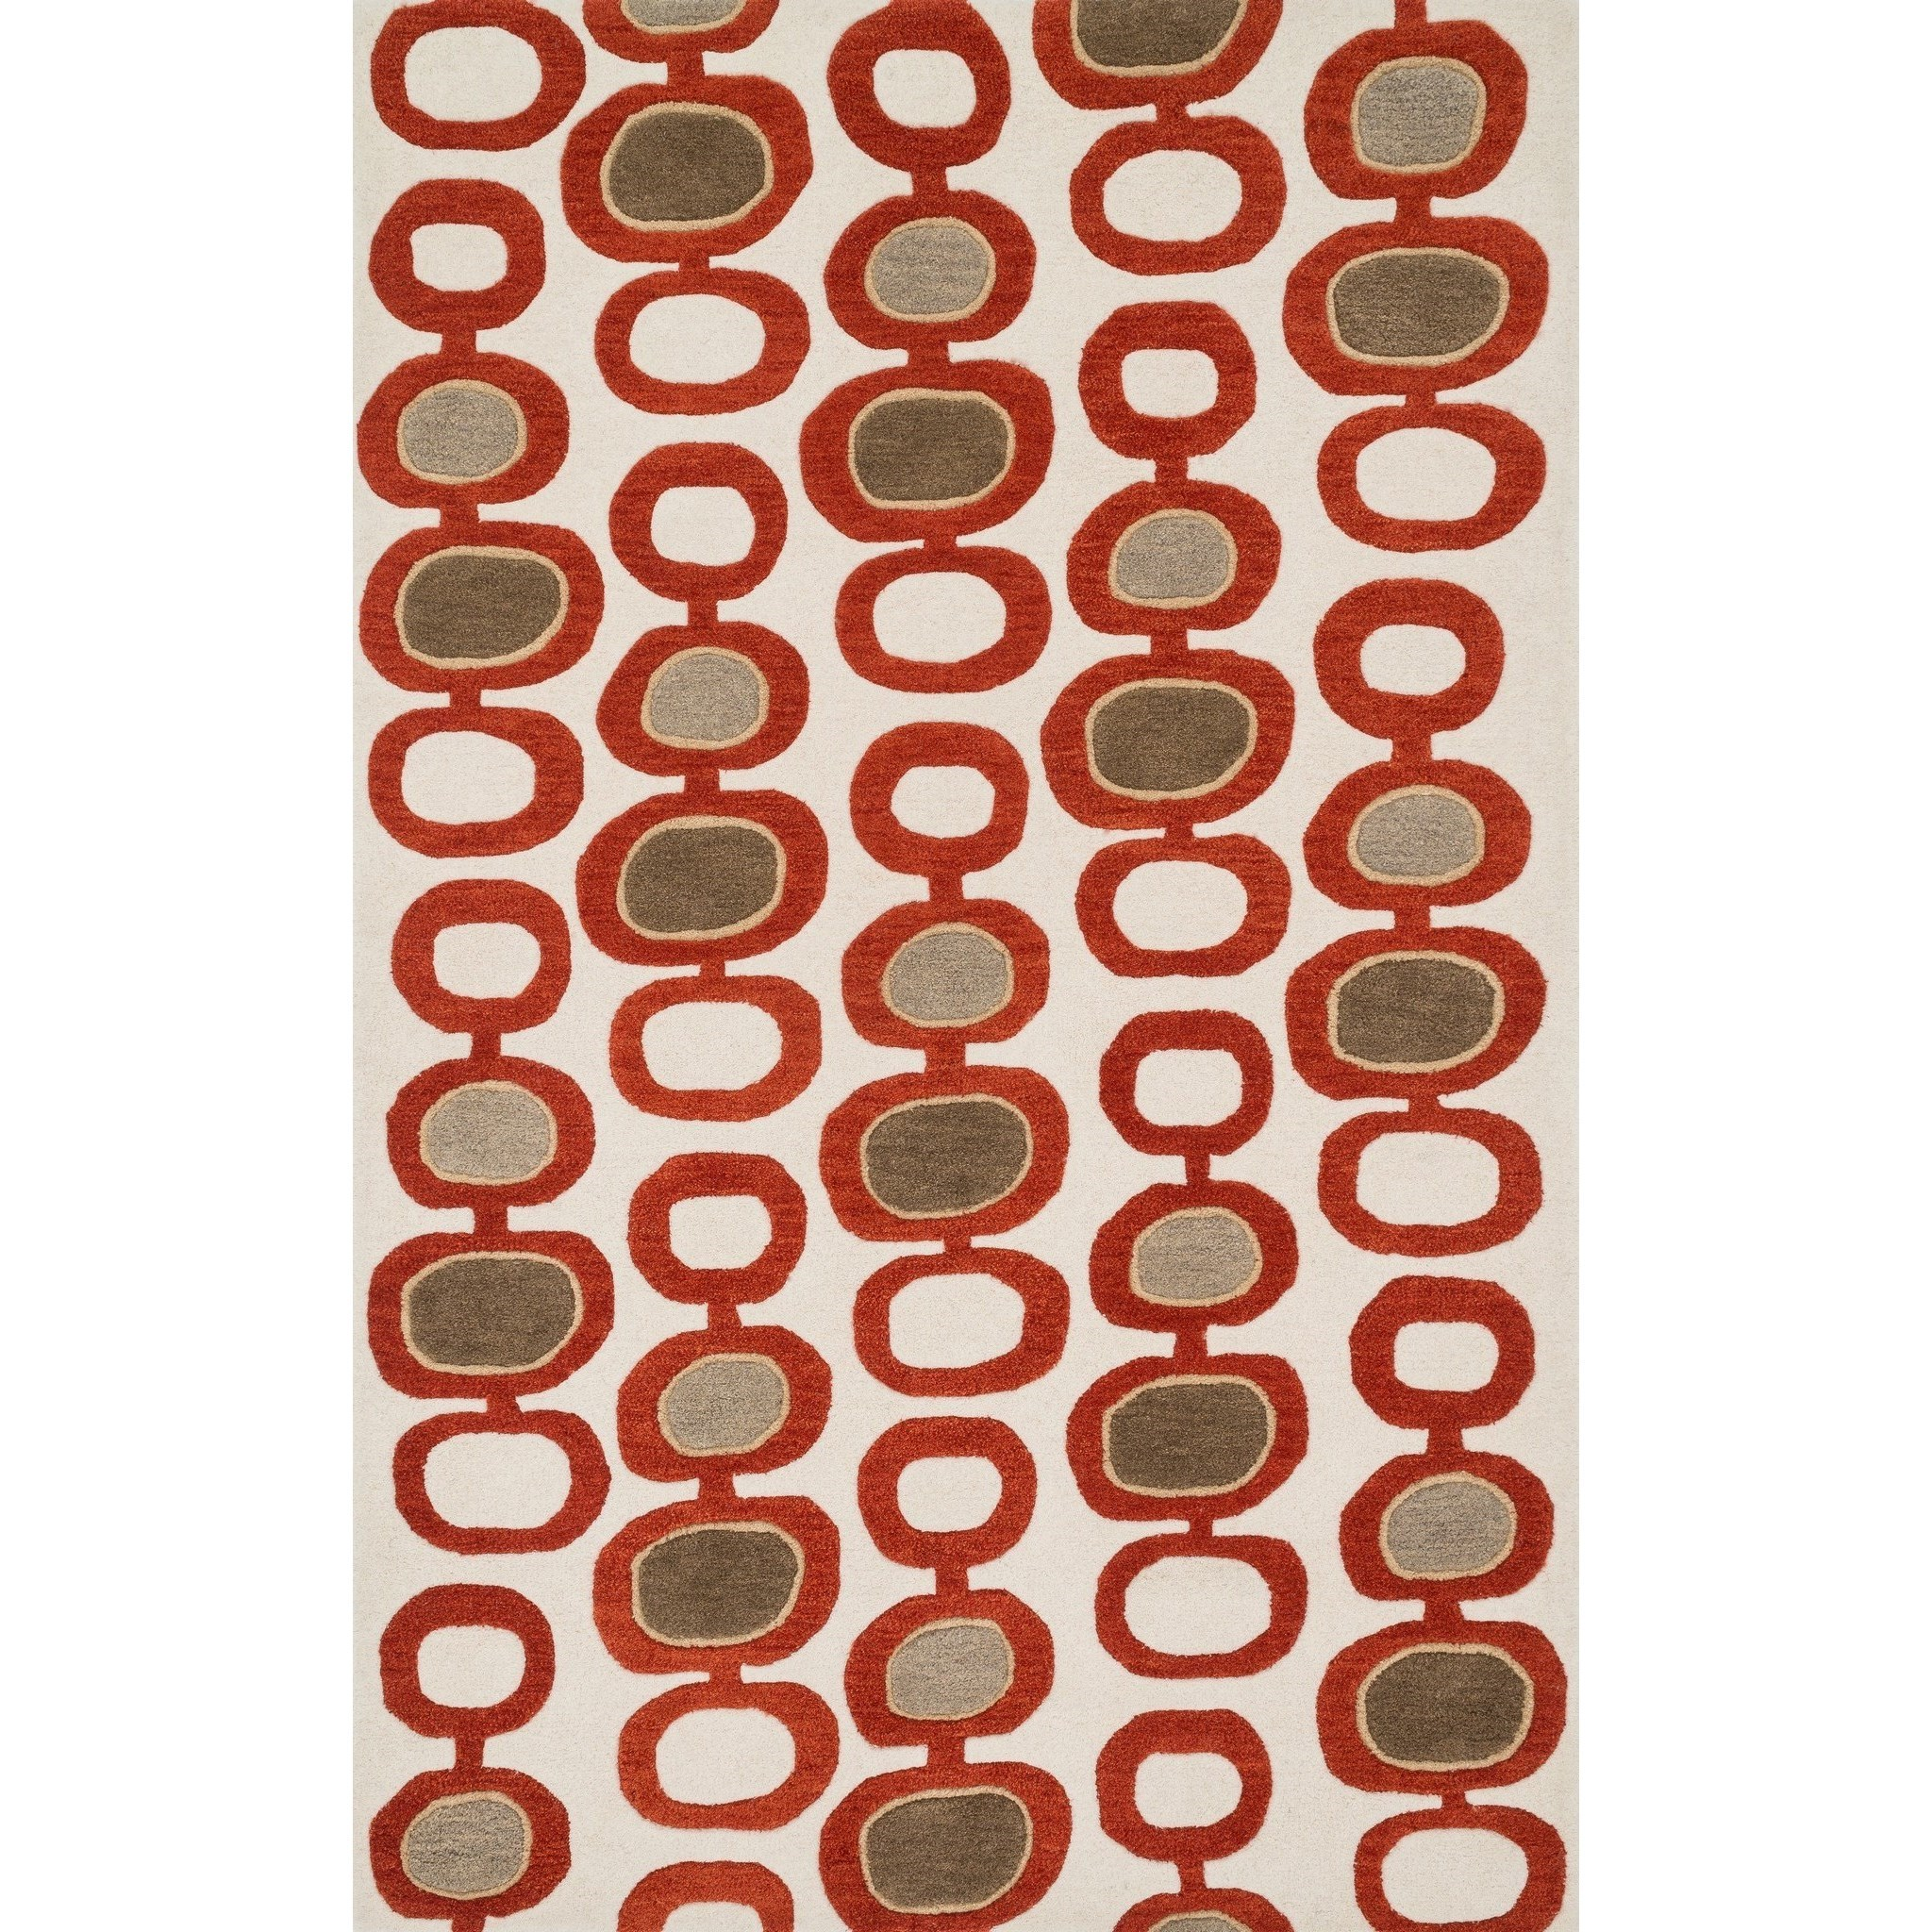 Loloi Rugs Nova 7 10 X 11 0 Area Rug Belfort Furniture Rugs